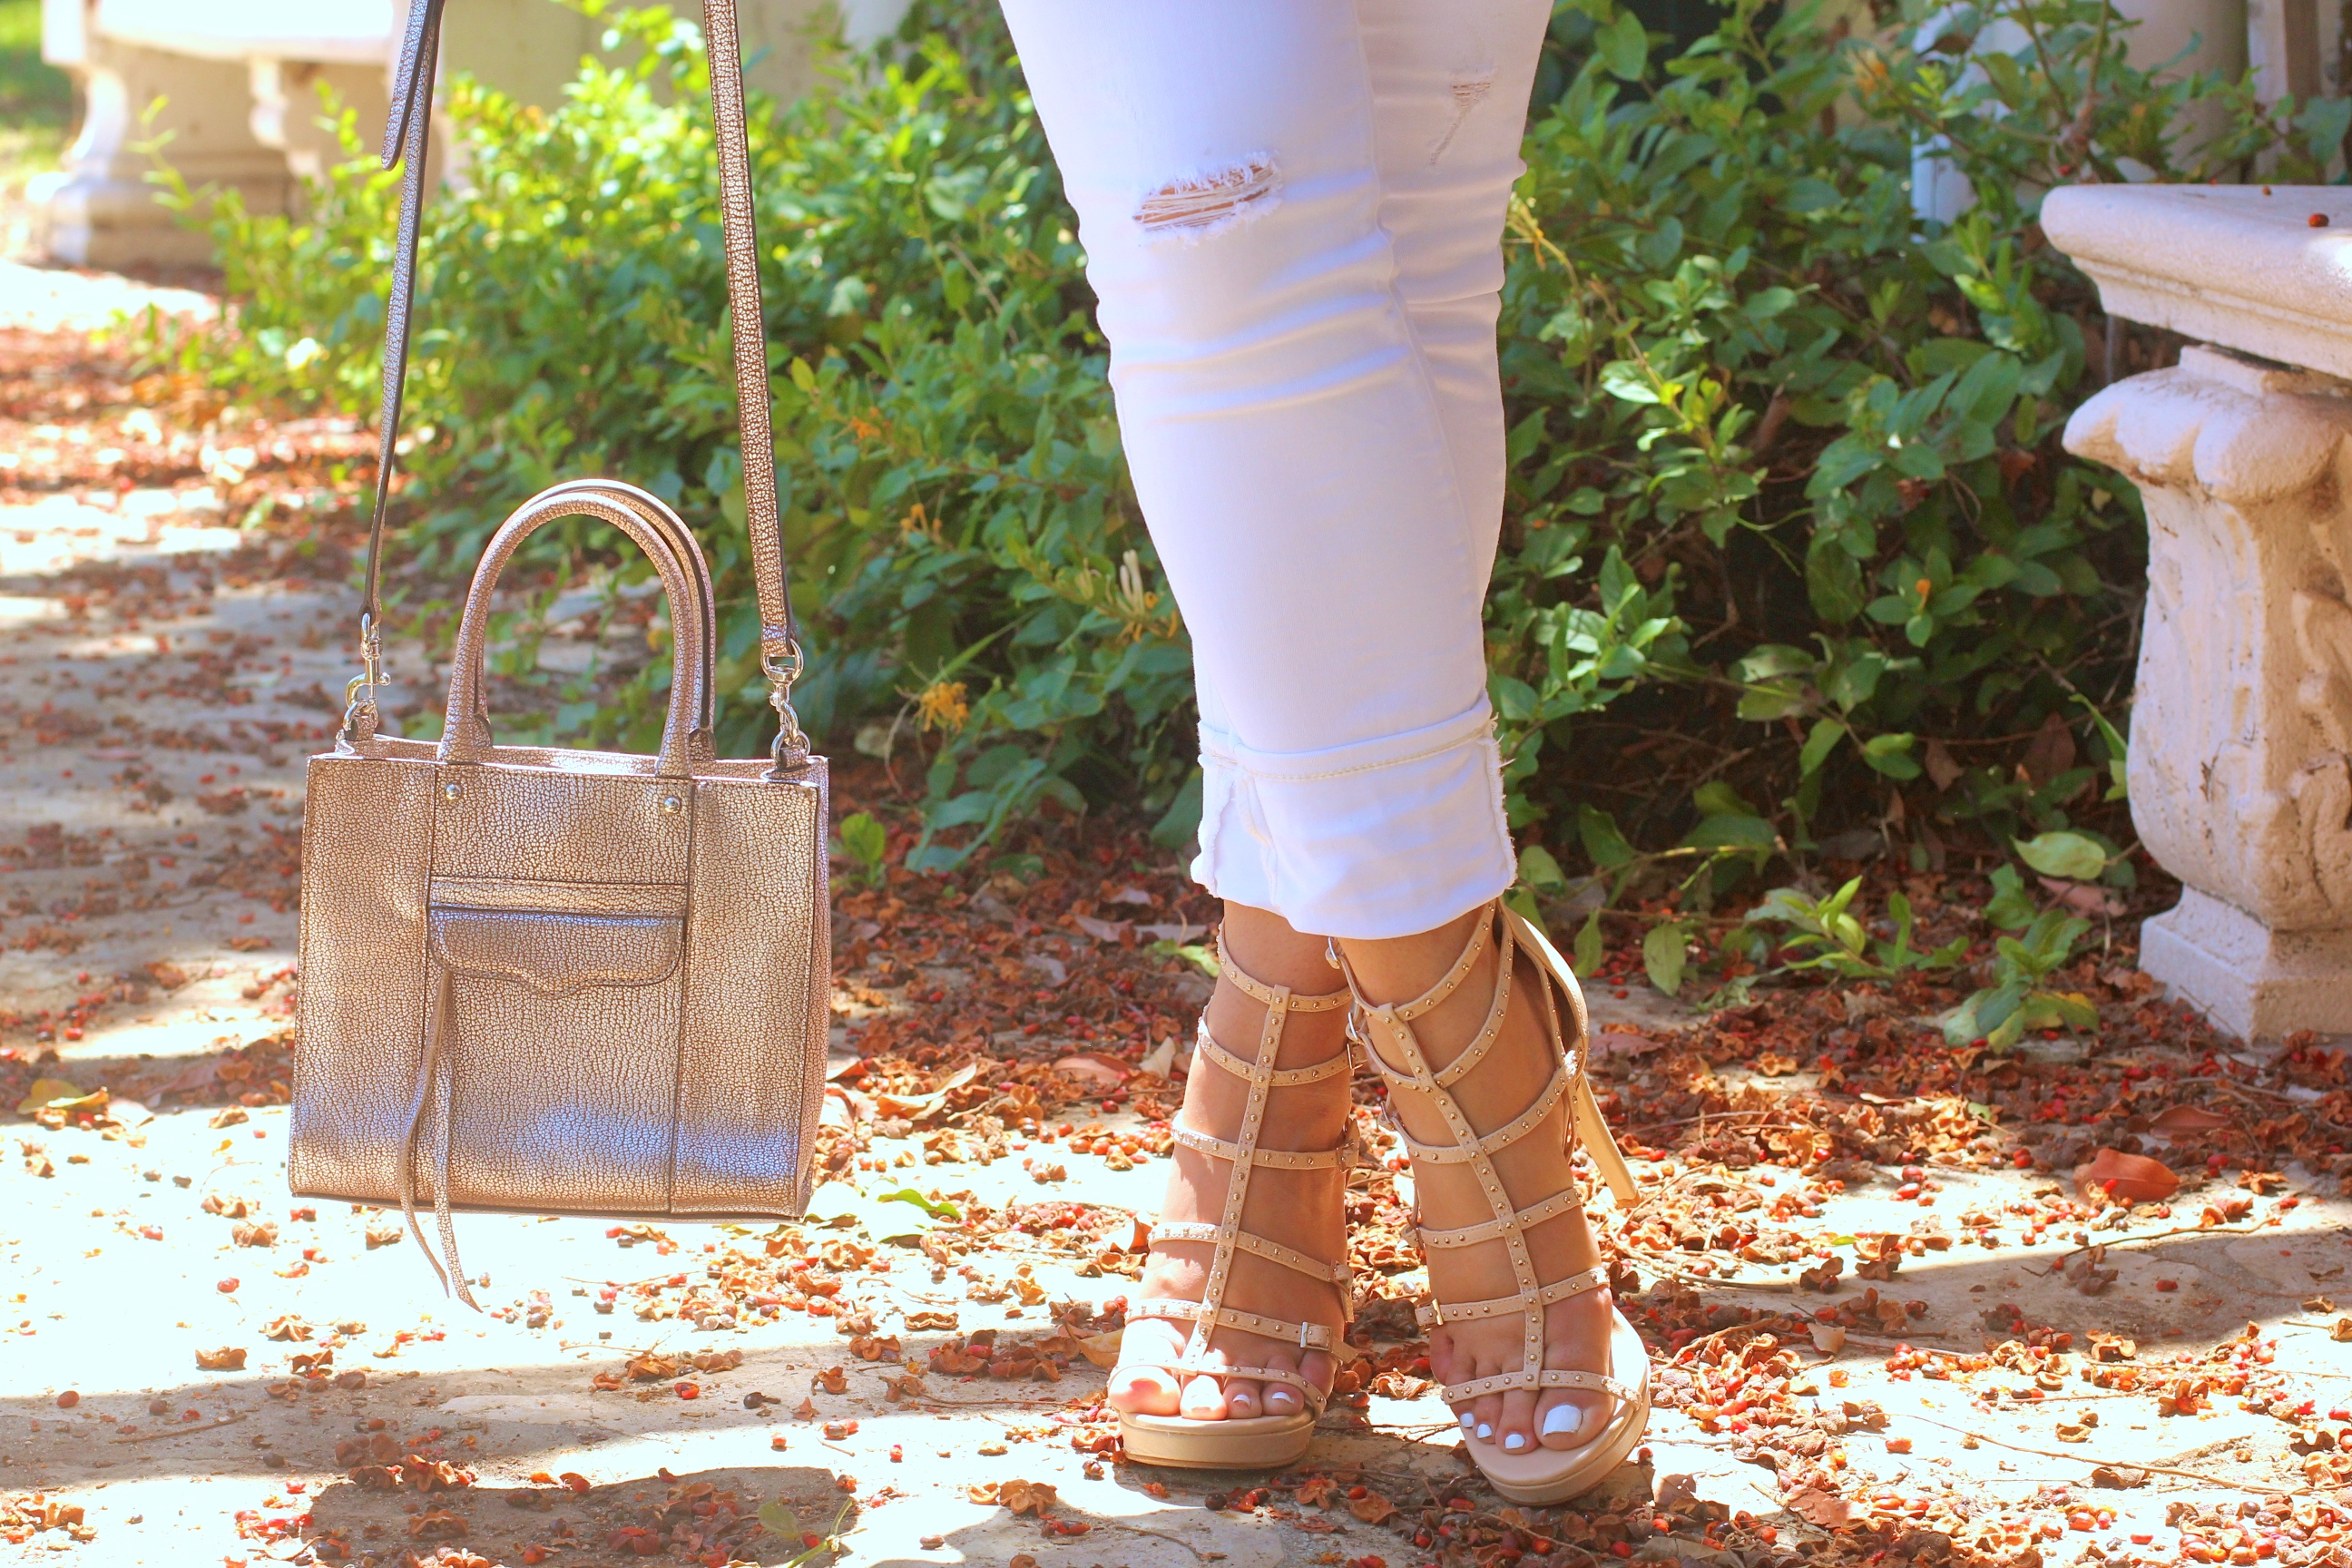 missyonmadison, melissa tierney, long sleeve cold shoulder top, long sleeve babydoll cold shoulder top, white skinny jeans, white old navy skinny jeans, white distressed jeans, vince camuto, vince camuto gladiator sandals, strappy heeled sandals, tan heeled sandals, rebecca minkoff, my r, rebecca minkoff mini mab tote, poshmark, rebecca minkoff metallic bag, ray bans, blue aviators, ray ban aviators, brunette hair, beverly hills, la blogger, winter white, white jeans in winter, how to style white jeans, fashion blogger, style blogger, ootd, outfit inspo, outfit inspiration,